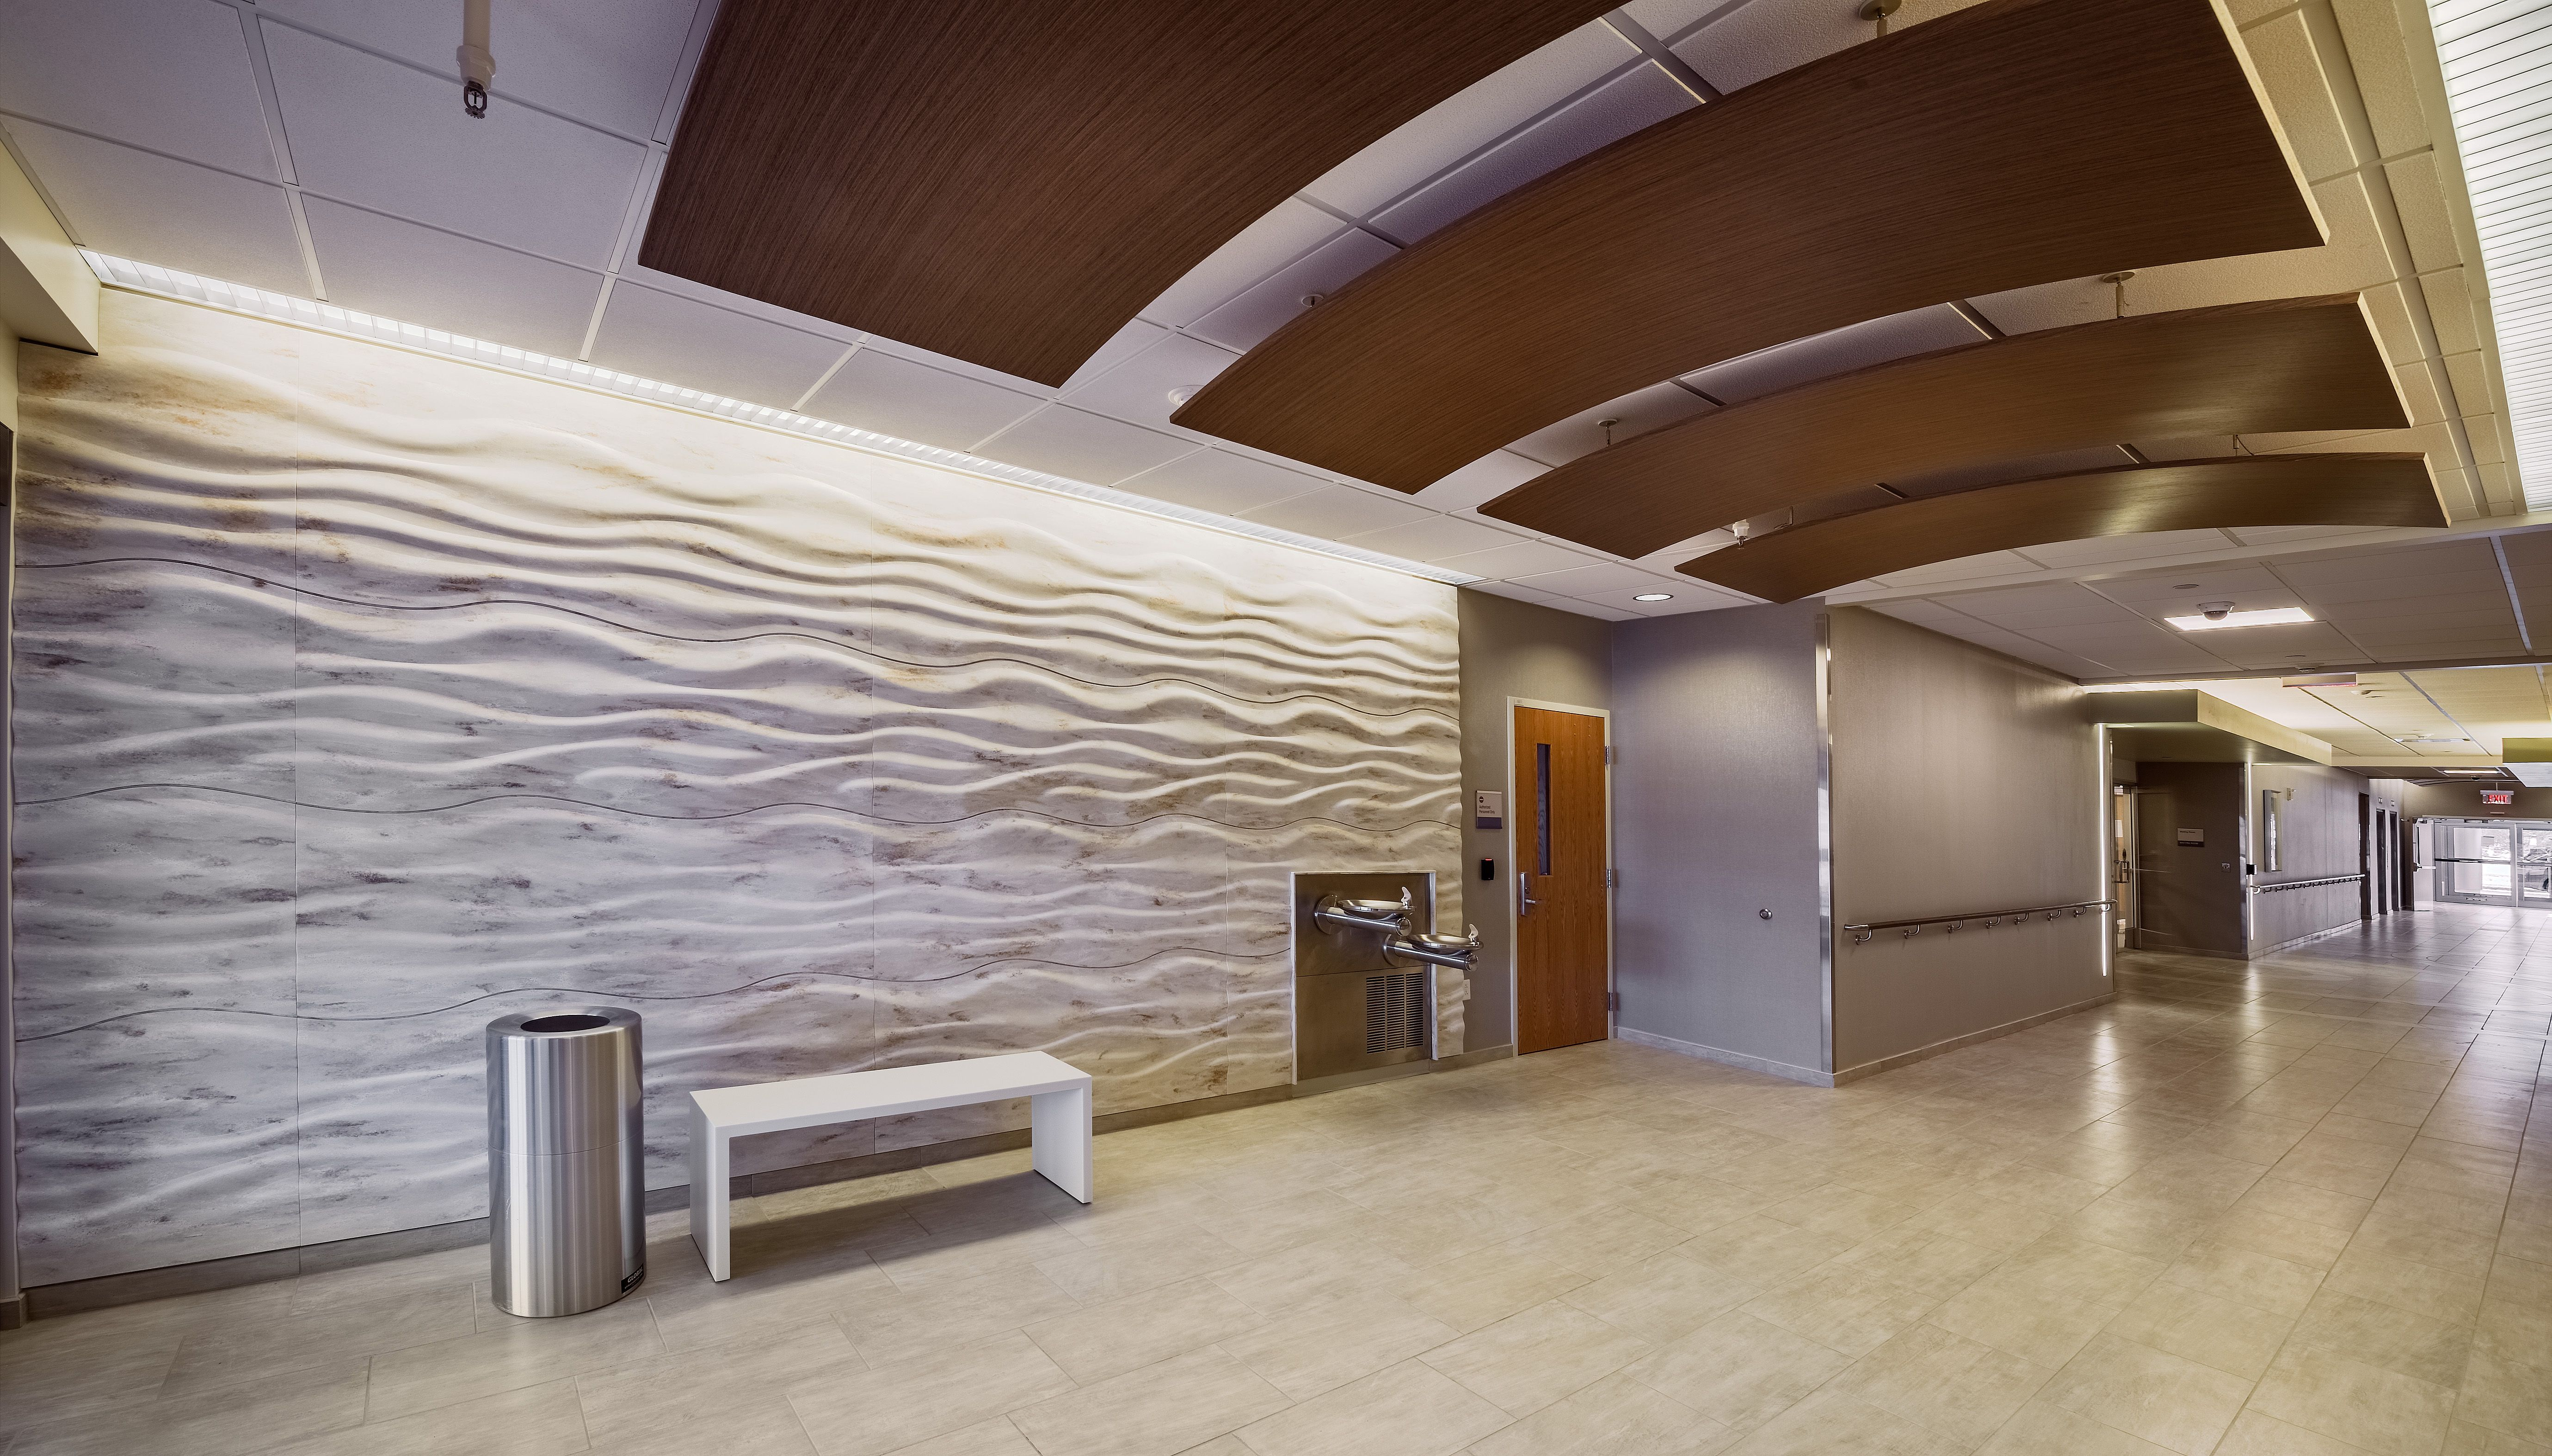 Sculptcor Is A Patented Thermoformed Architectural Wall Panel System That Takes Inspiration From Dive Wall Cladding Architectural Wall Panel Wall Panel System